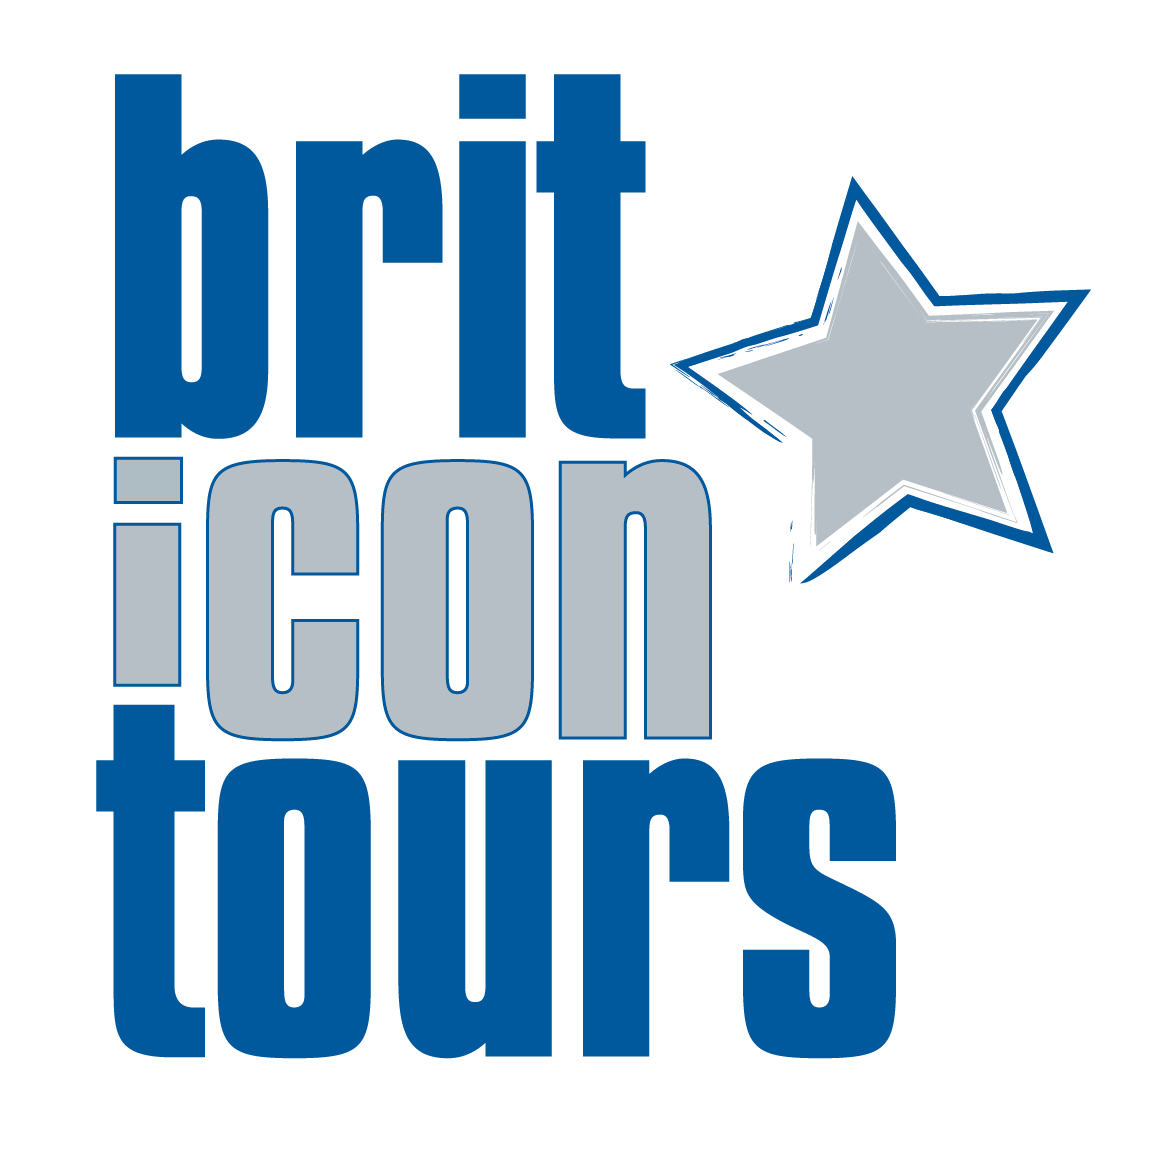 Brit Icon Tours